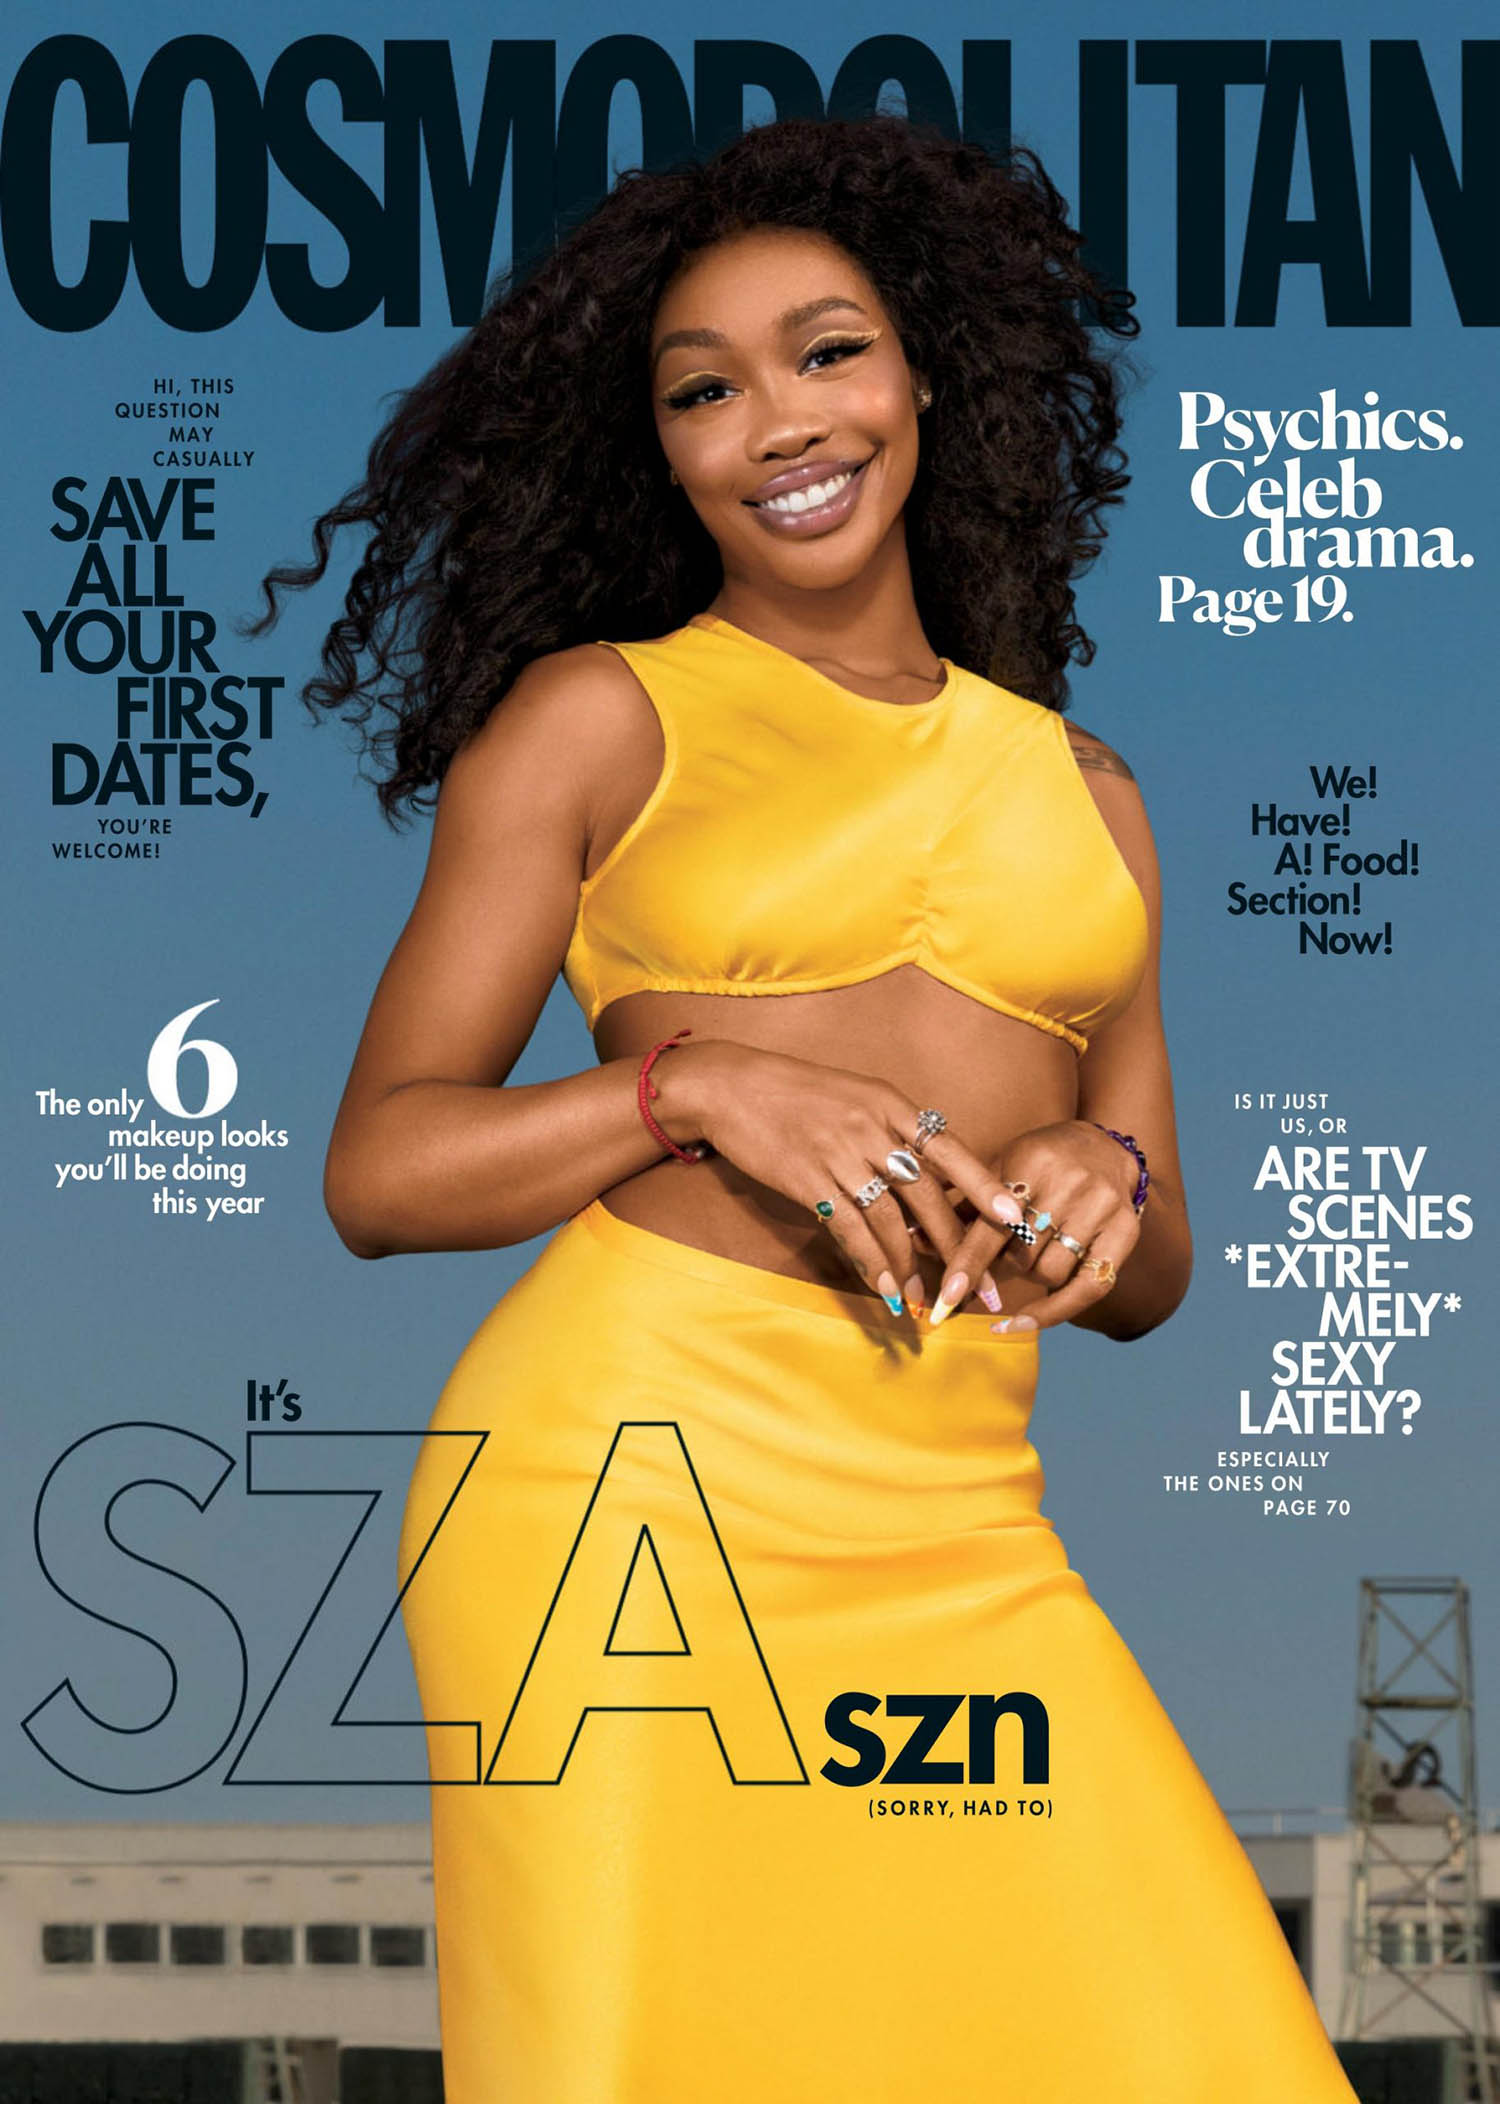 SZA covers Cosmopolitan US February 2021 by Djeneba Aduayom